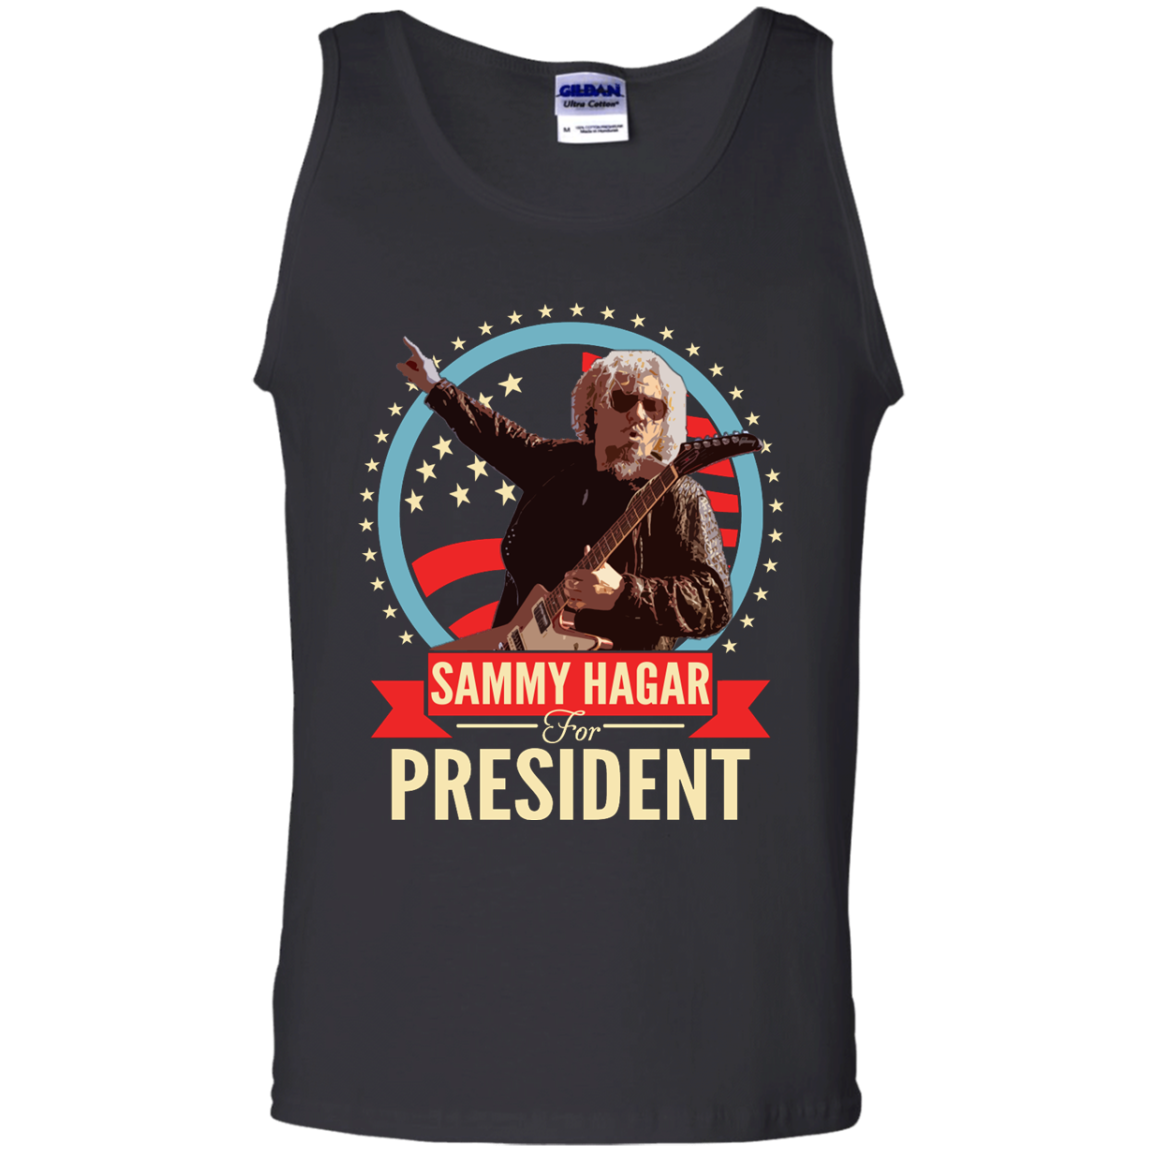 81d2091052662 Sammy Hagar for President Shirt Hoodie Tank - iFrogTees